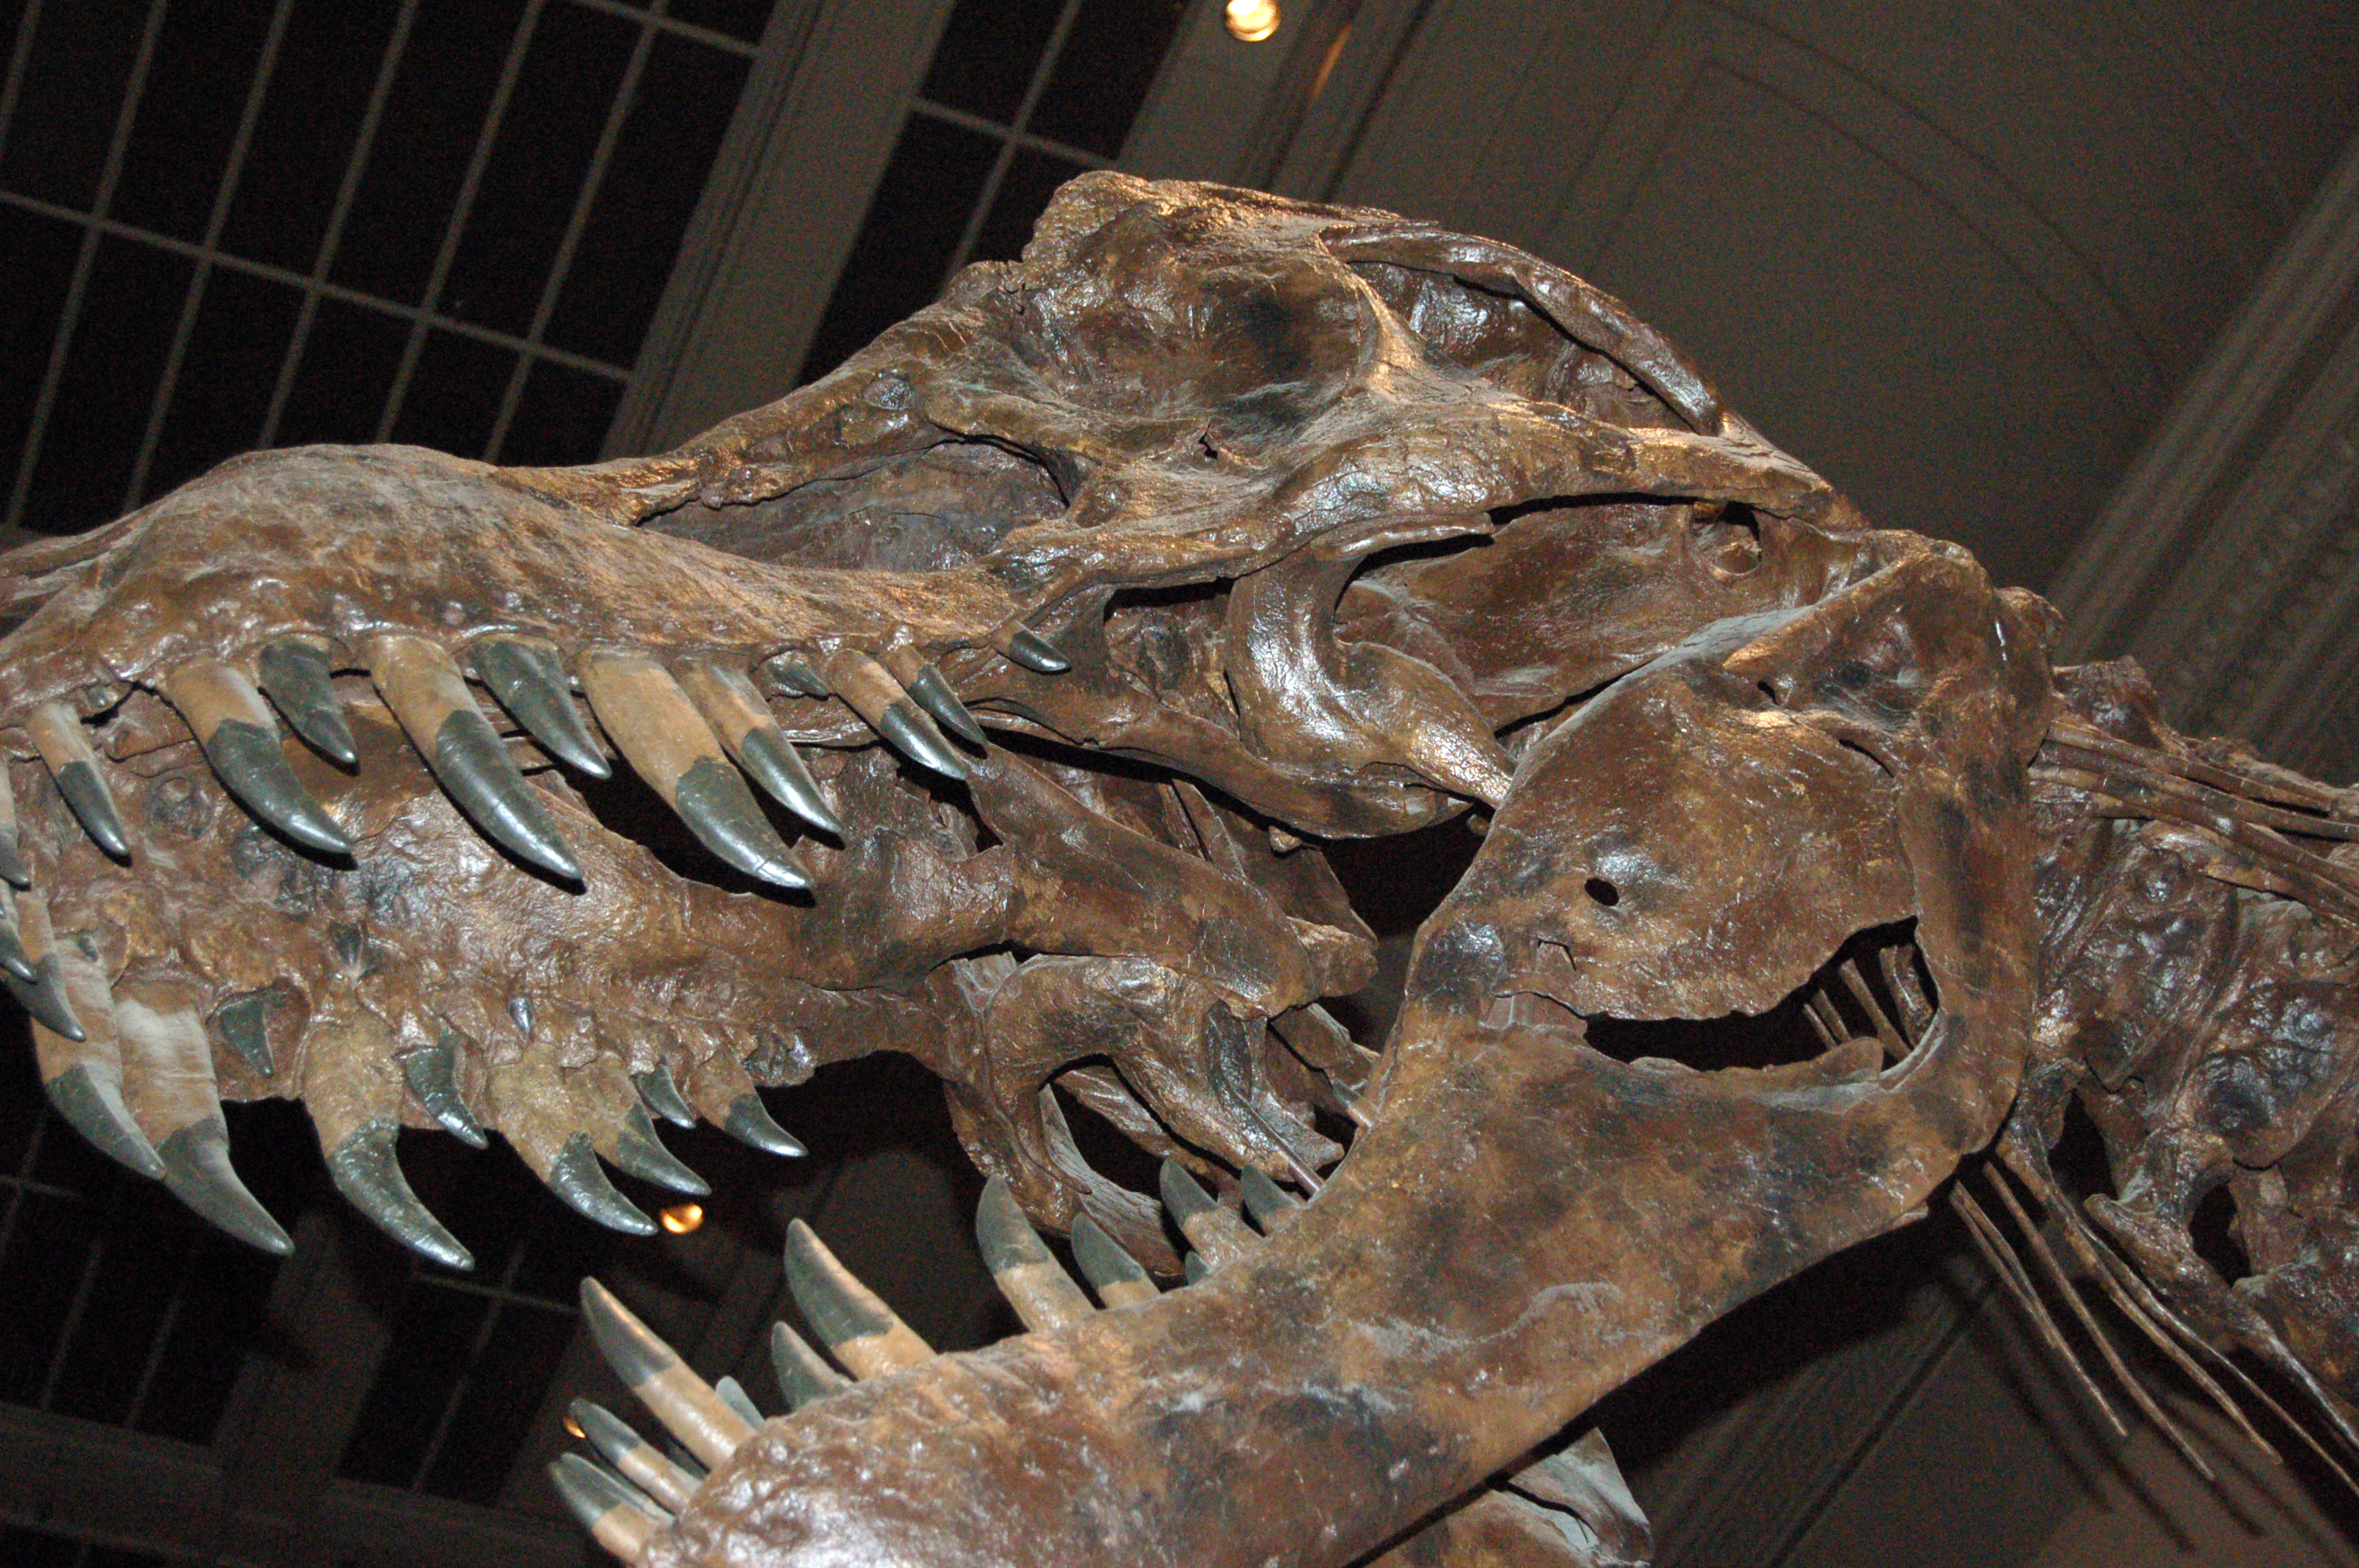 File:National Museum of Natural History - Dinosaurs (5946026771 ...